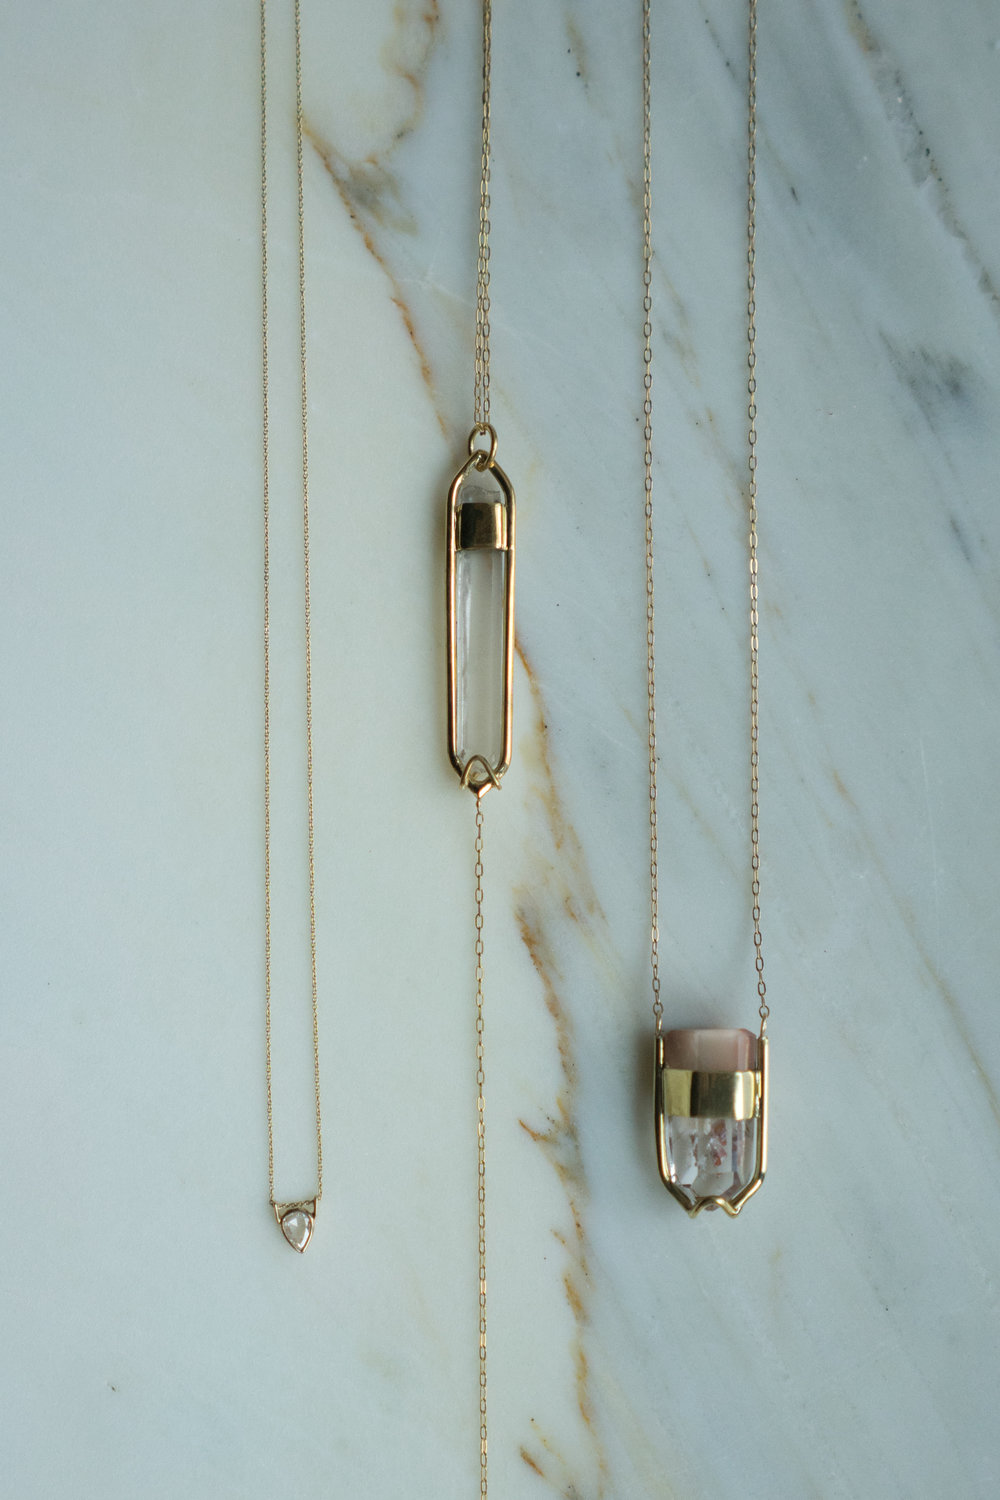 Lorae Russo - Necklaces